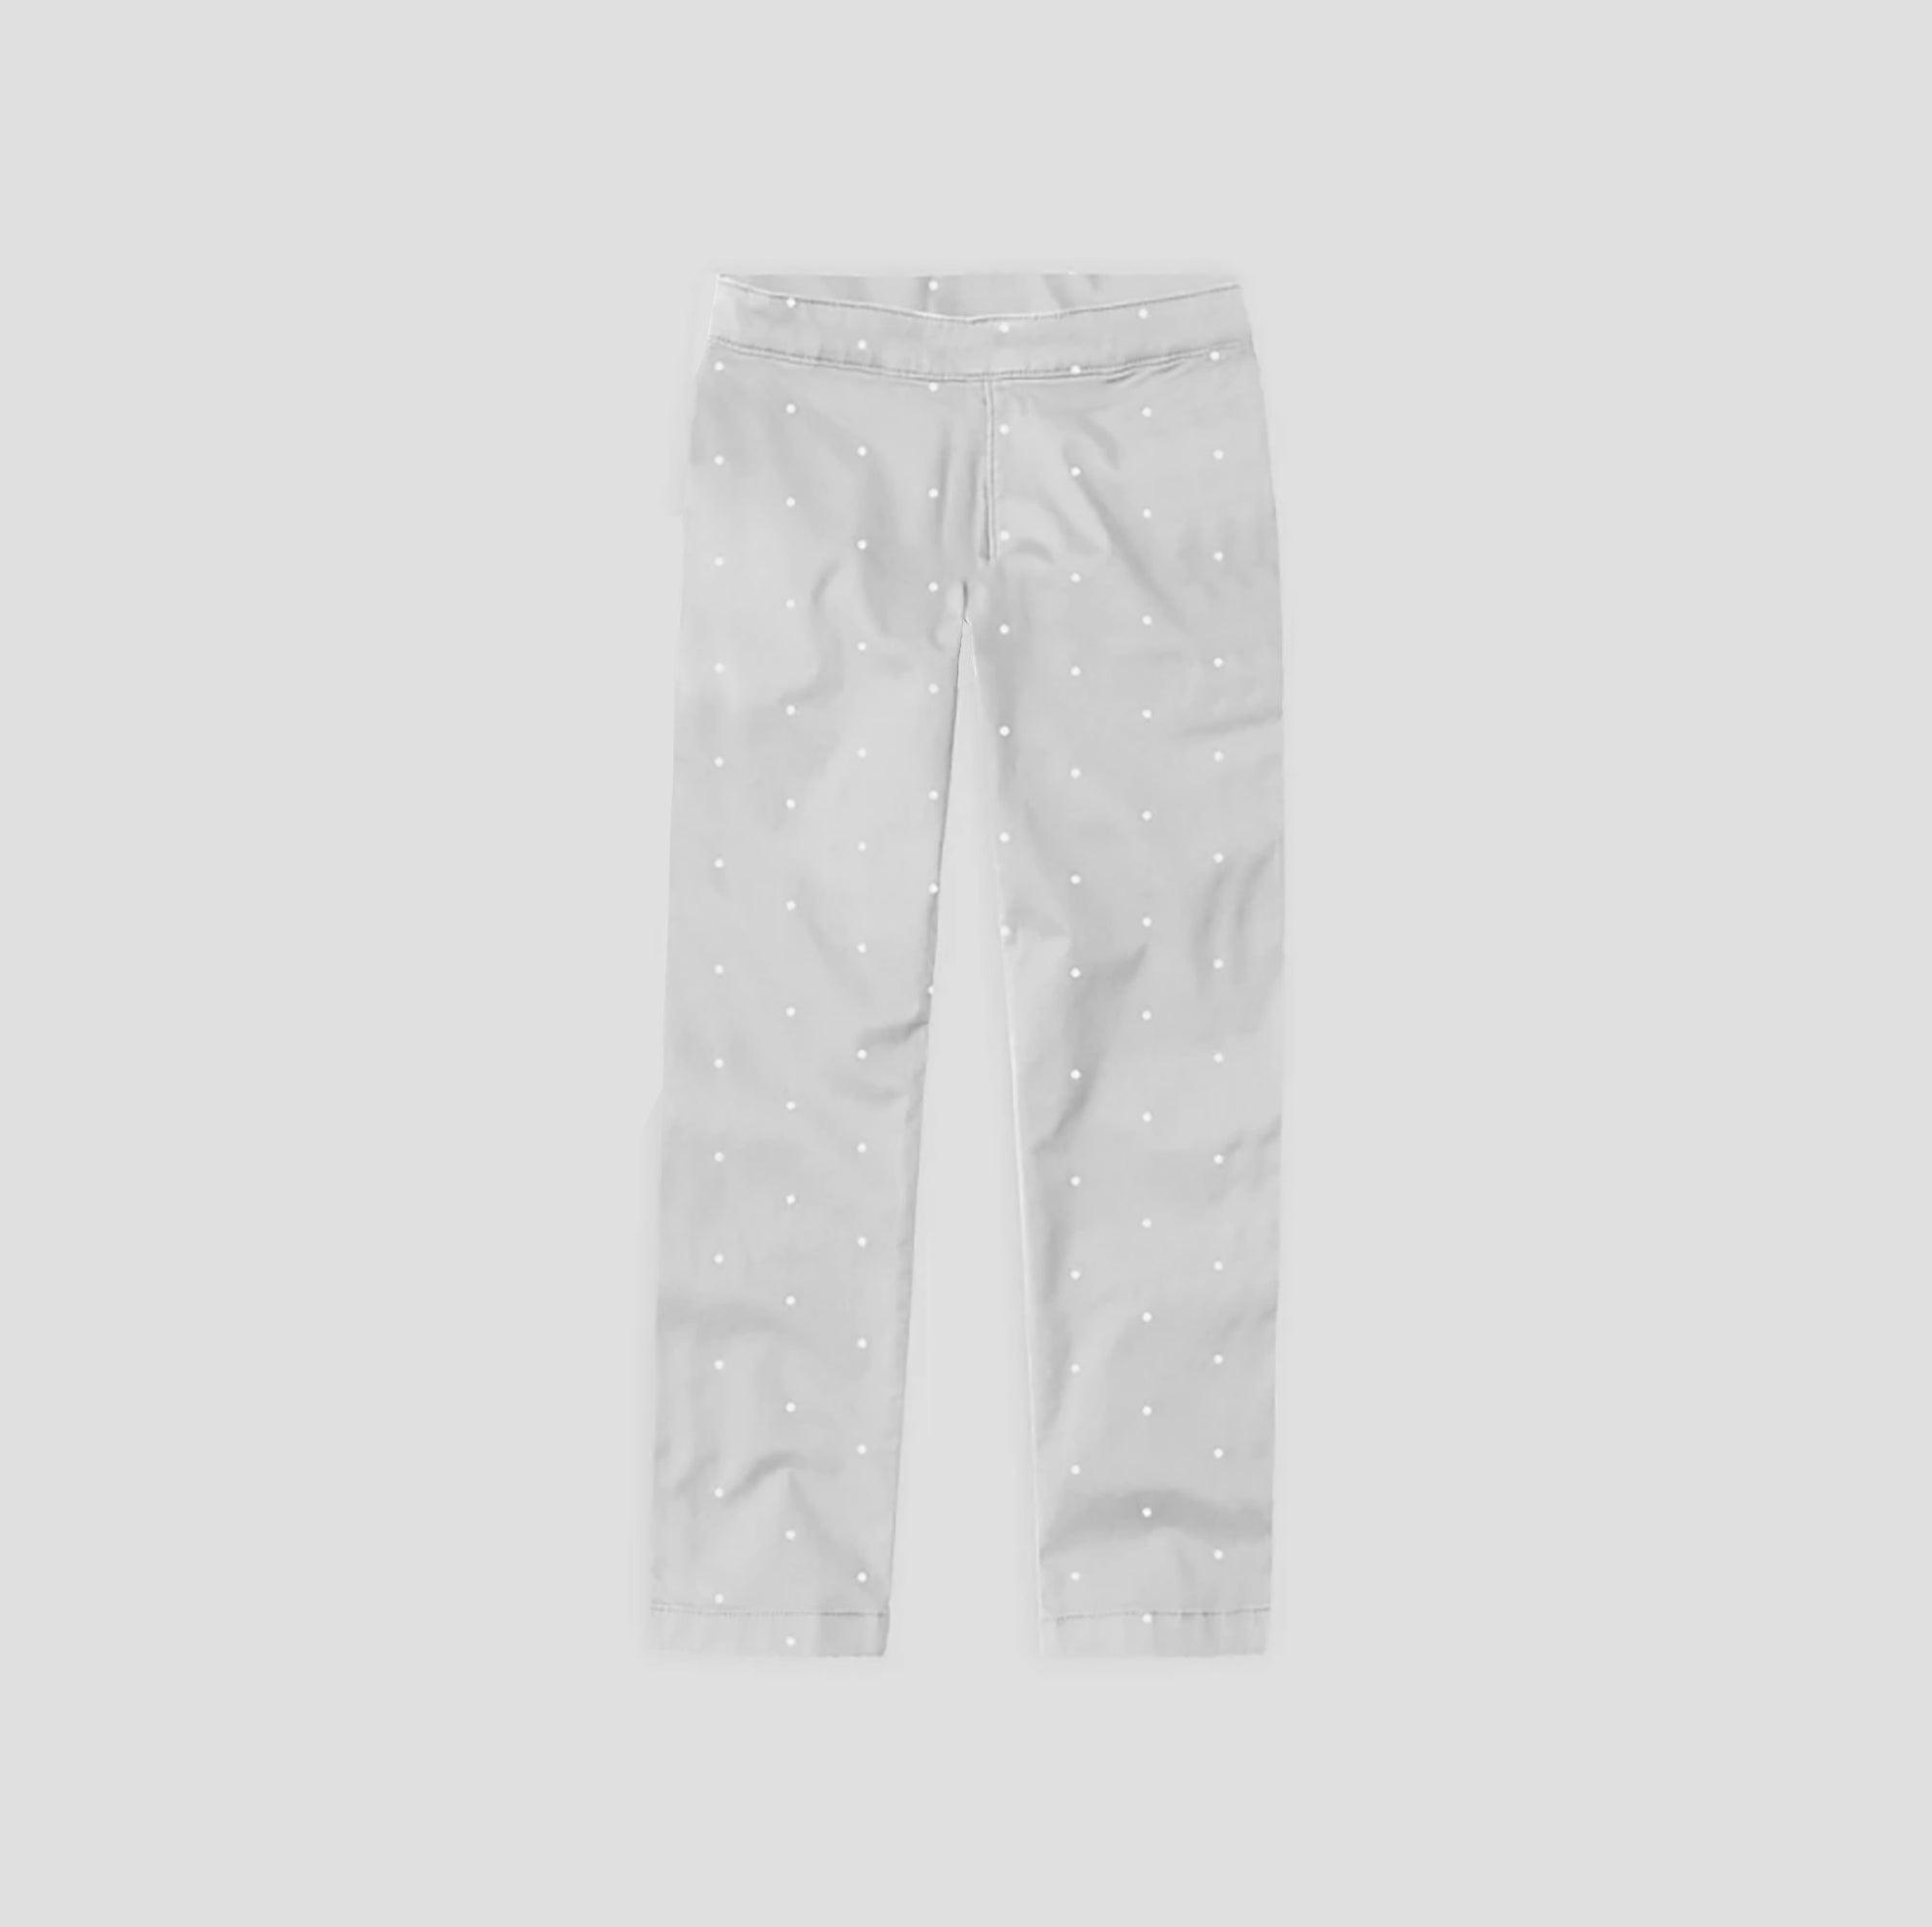 brandsego - Zara Man Slim Fit Flannel Trouser For Kids-Grey with Allover Print-SP339